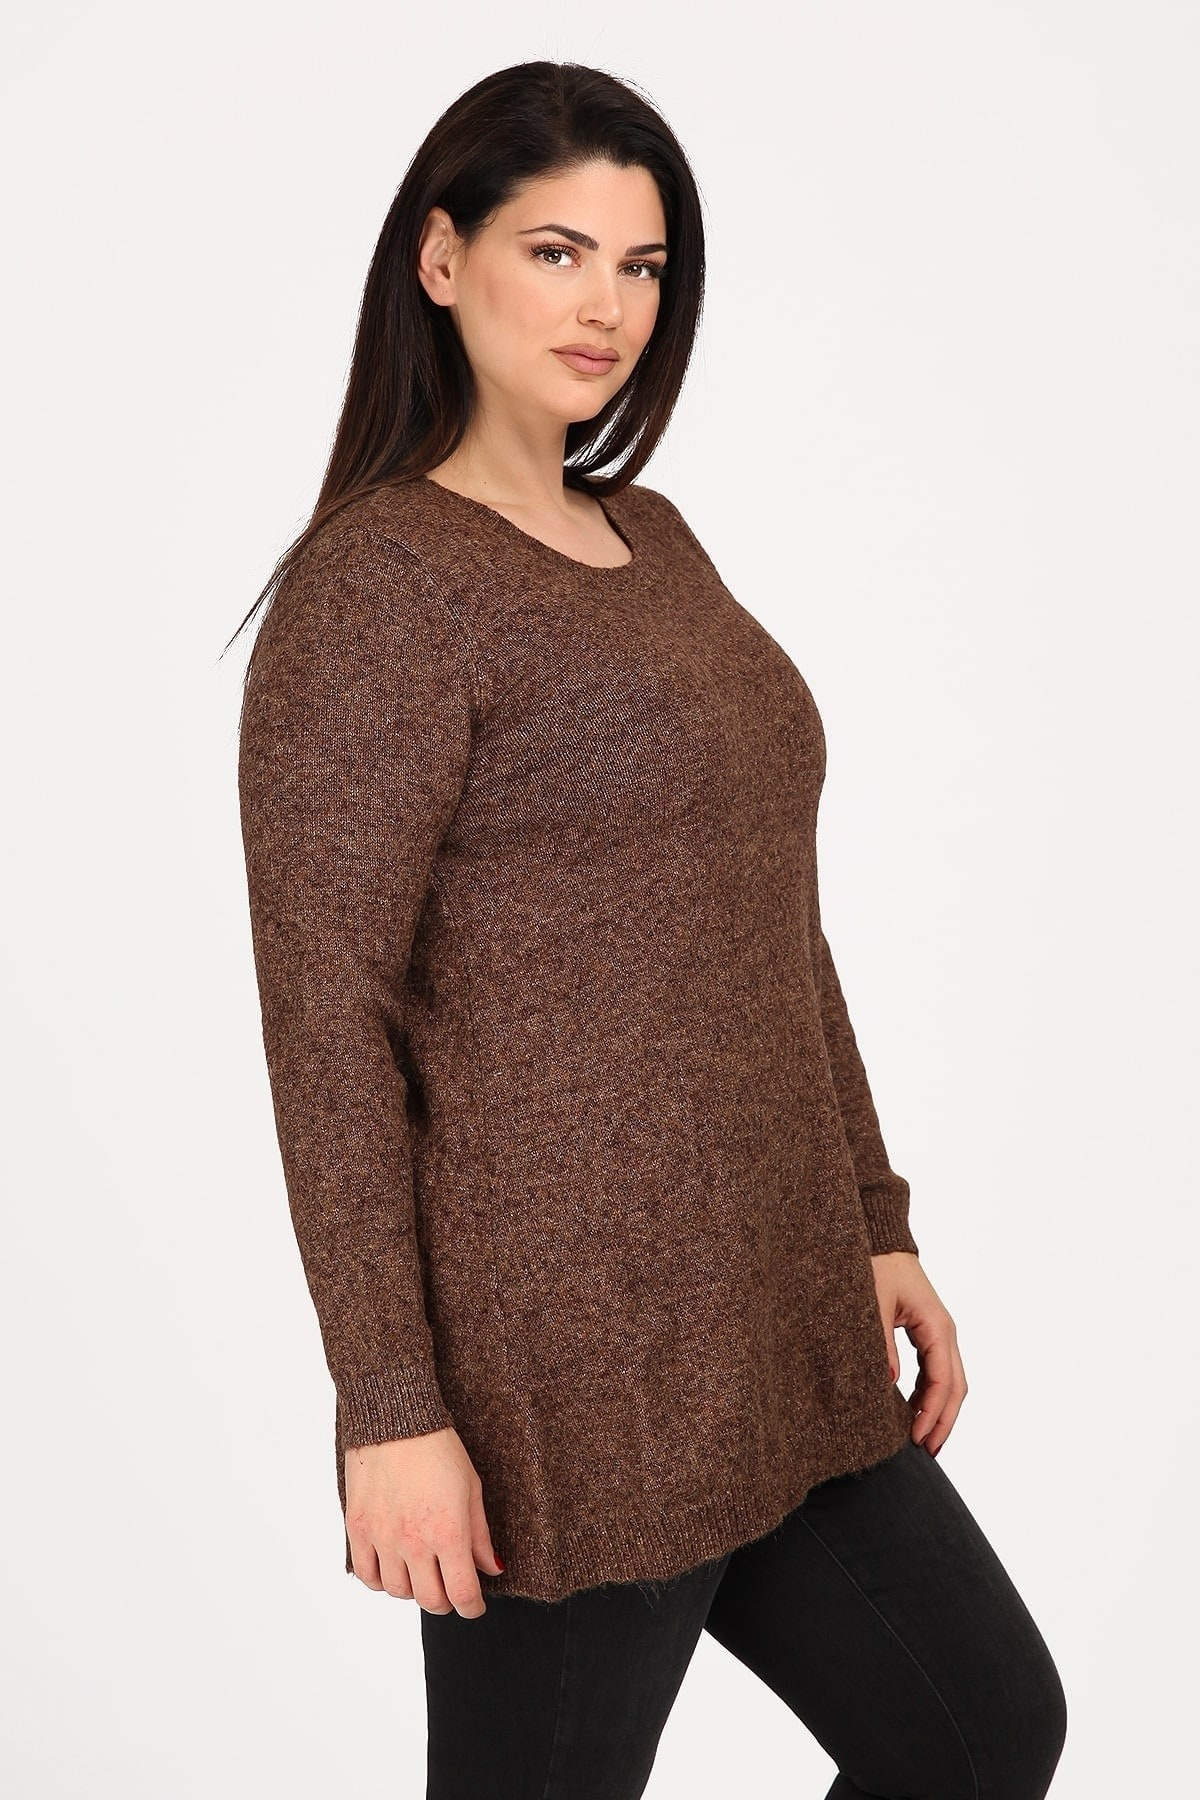 Knit blouse with a lace-up detail